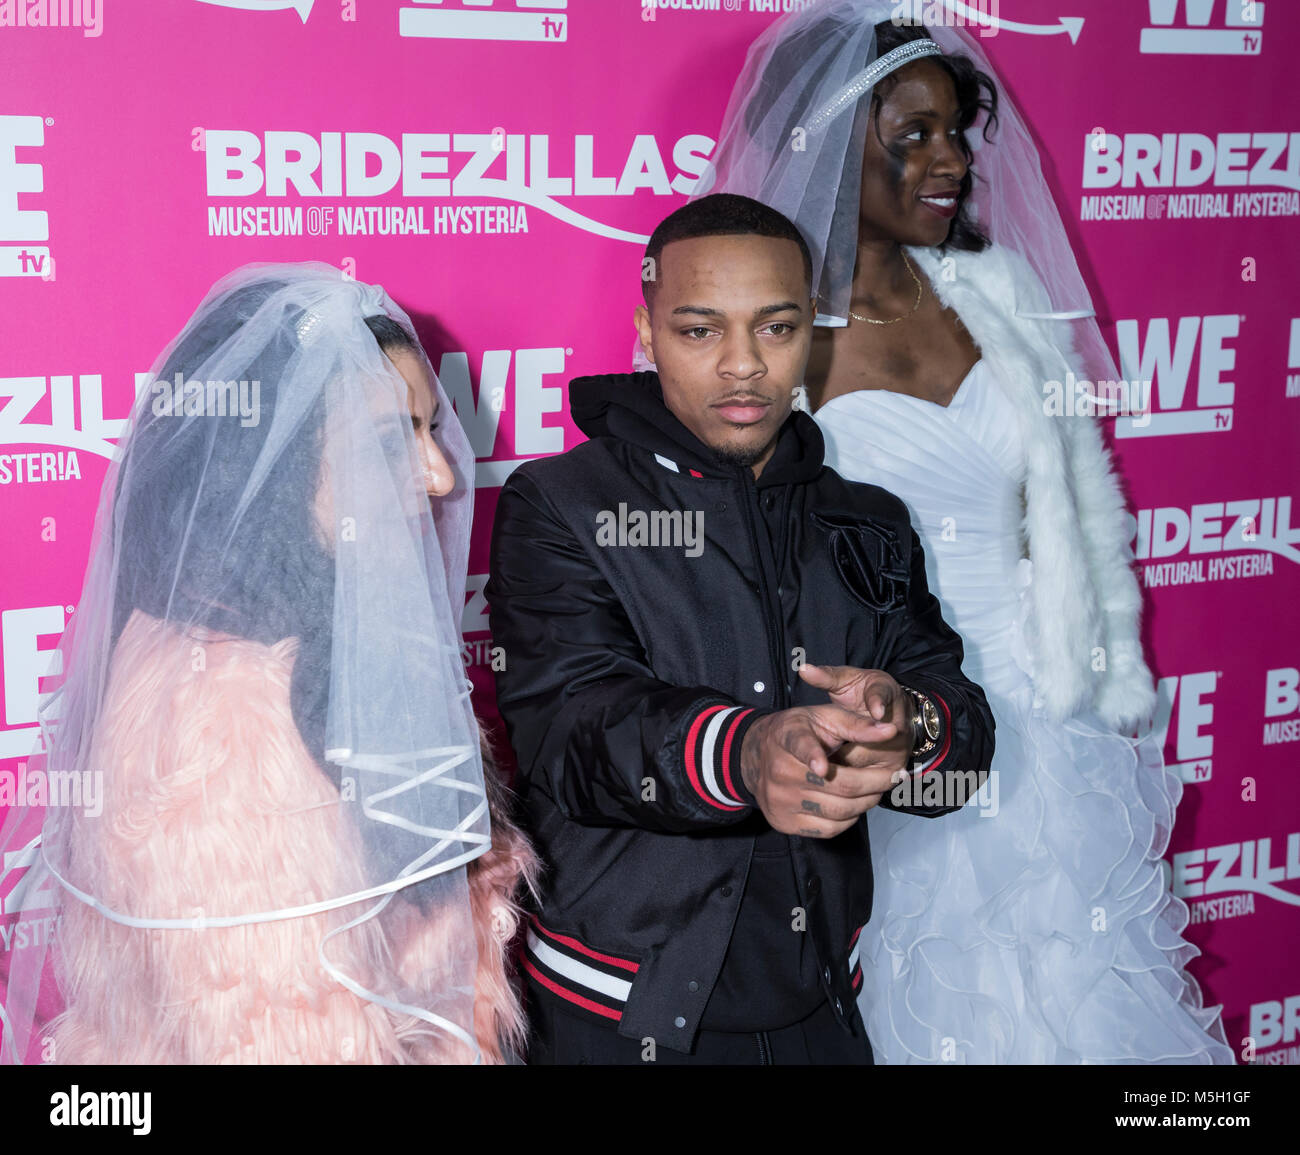 New York, USA. 22nd Feb, 2018. Bow Wow attends WE TV Launches Bridezillas Museum Of Natural Hysteria at Arena, Manhattan - Stock Image